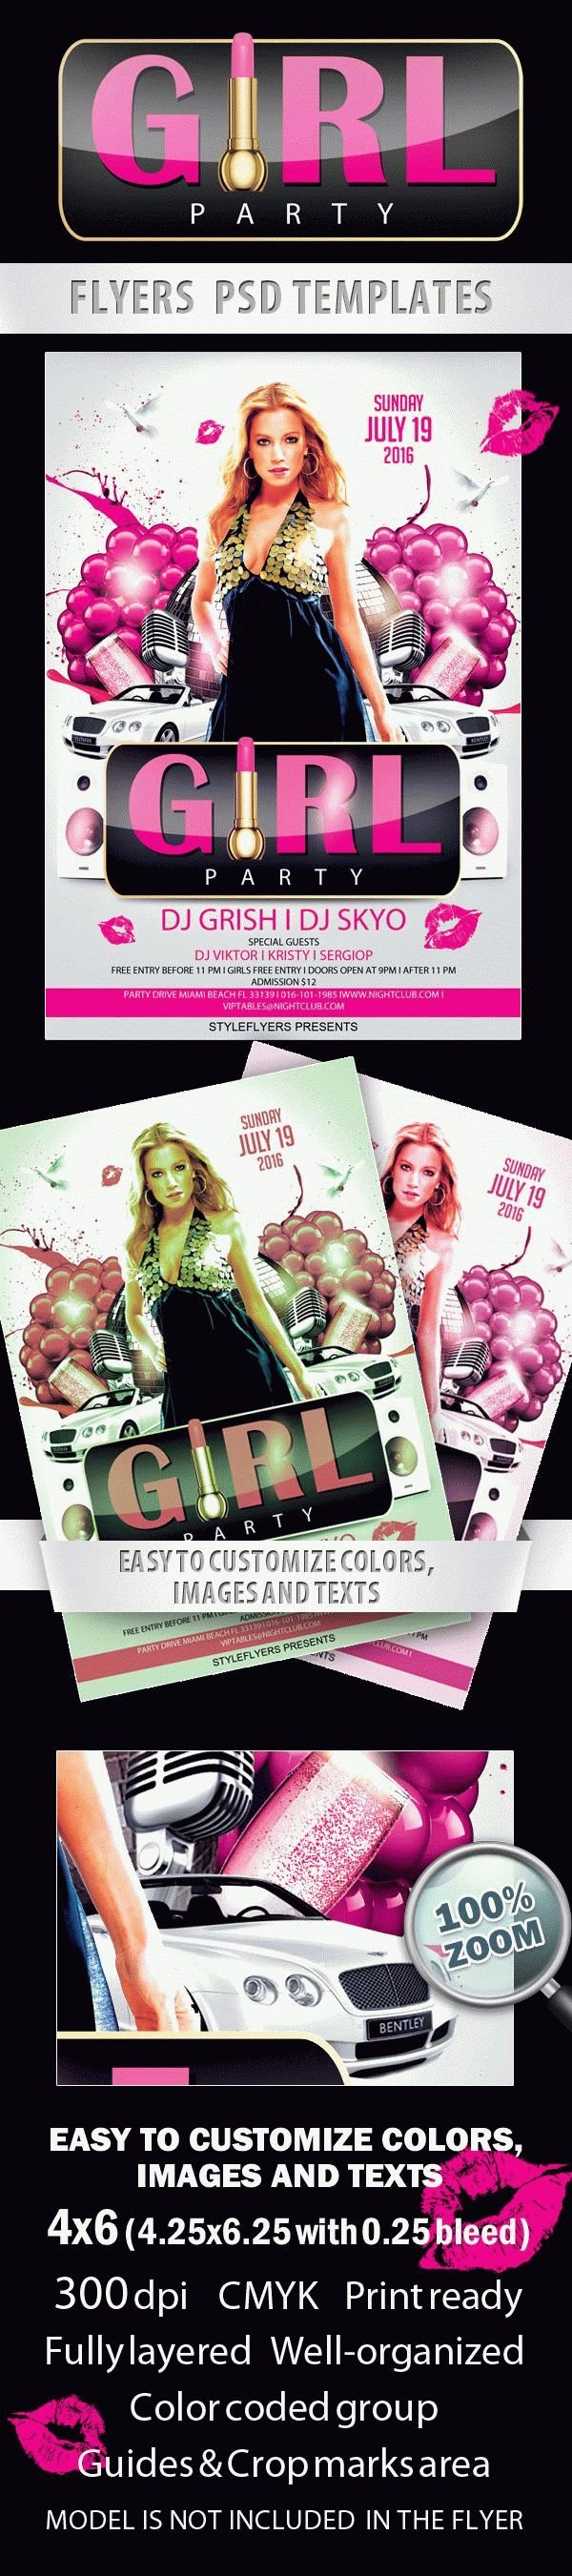 Party Girl Party Free Flyer PSD Template